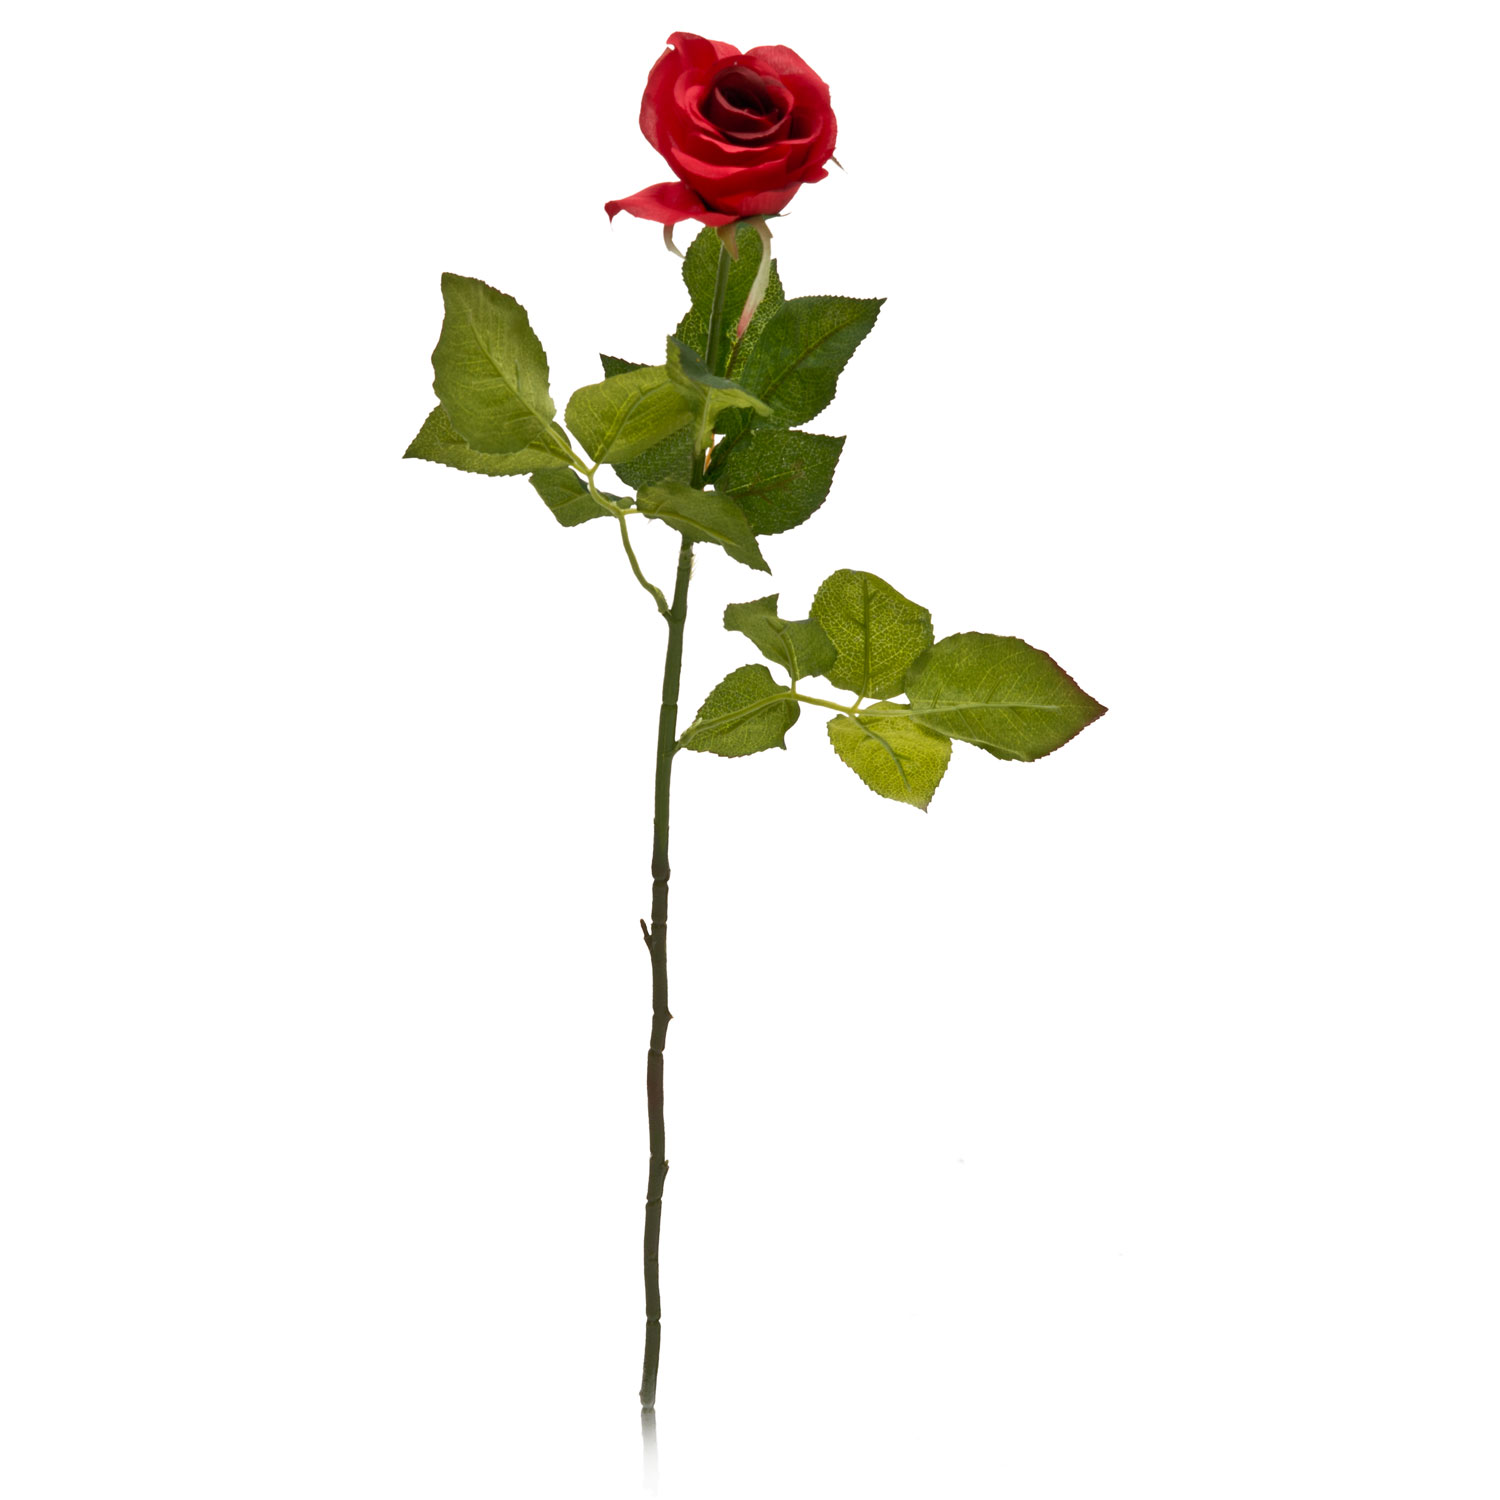 Image of Casa Artificial Artificial Rose Bud, Red, Large